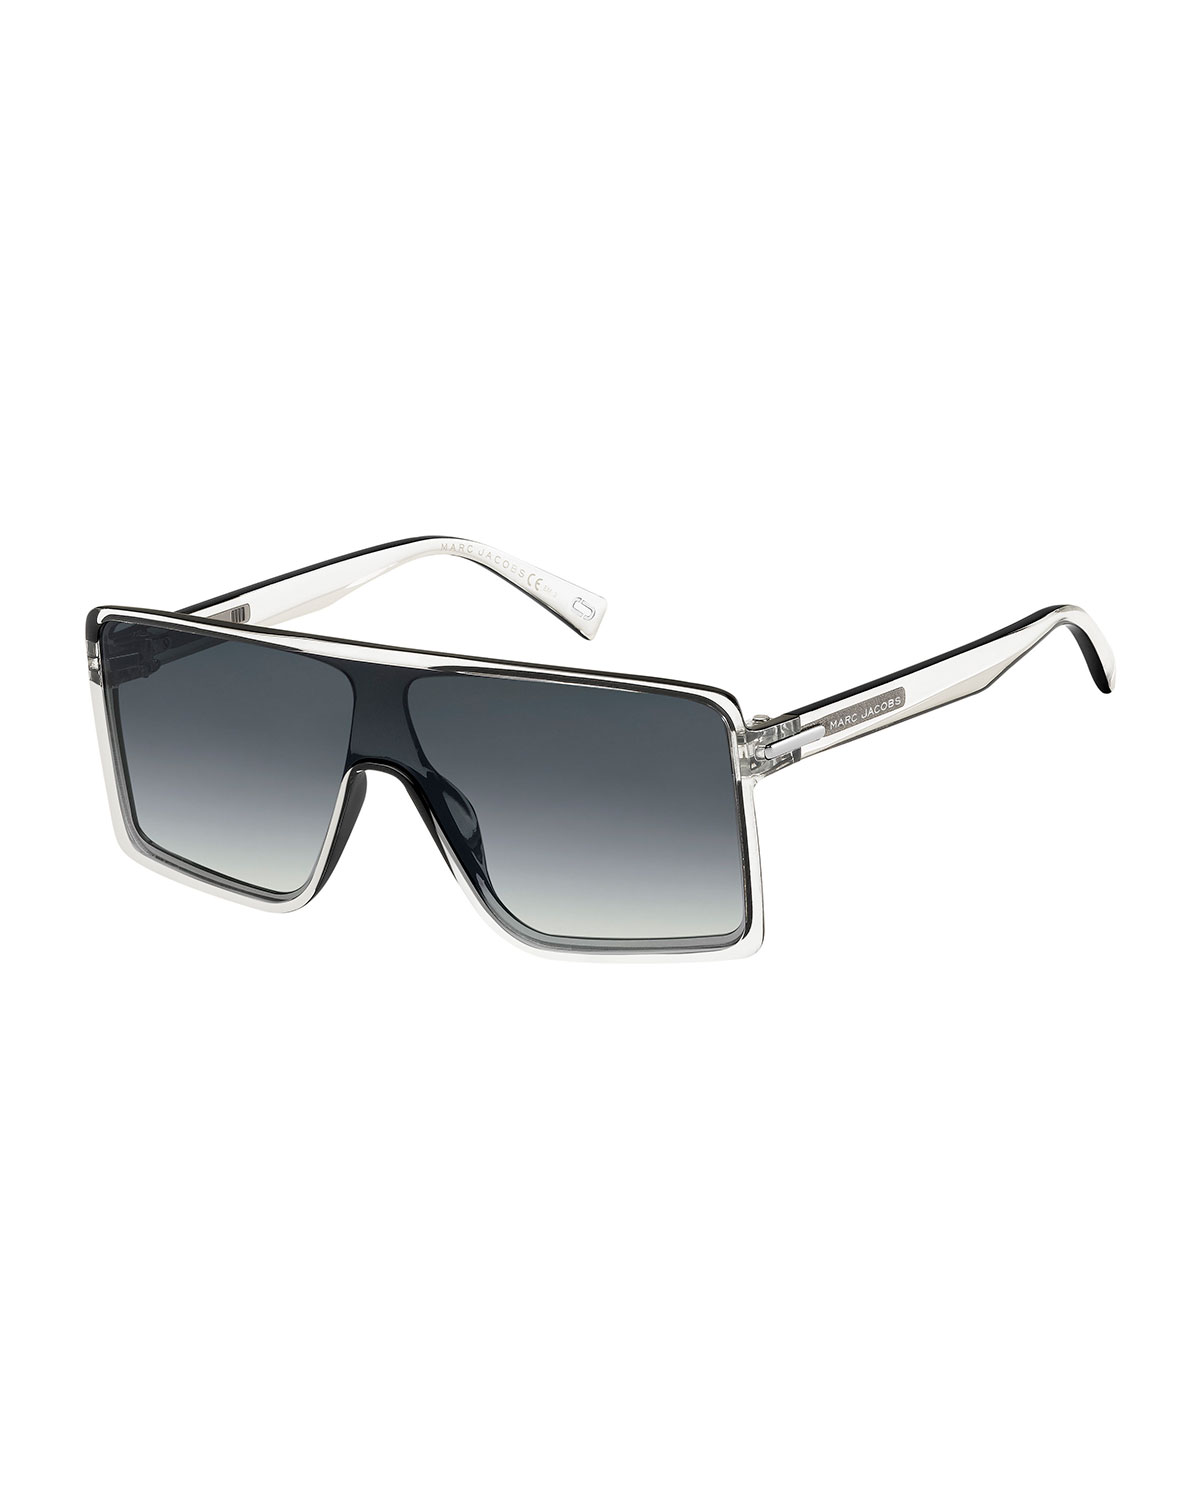 ad699fffccc79 Marc Jacobs Oversized Shield Sunglasses